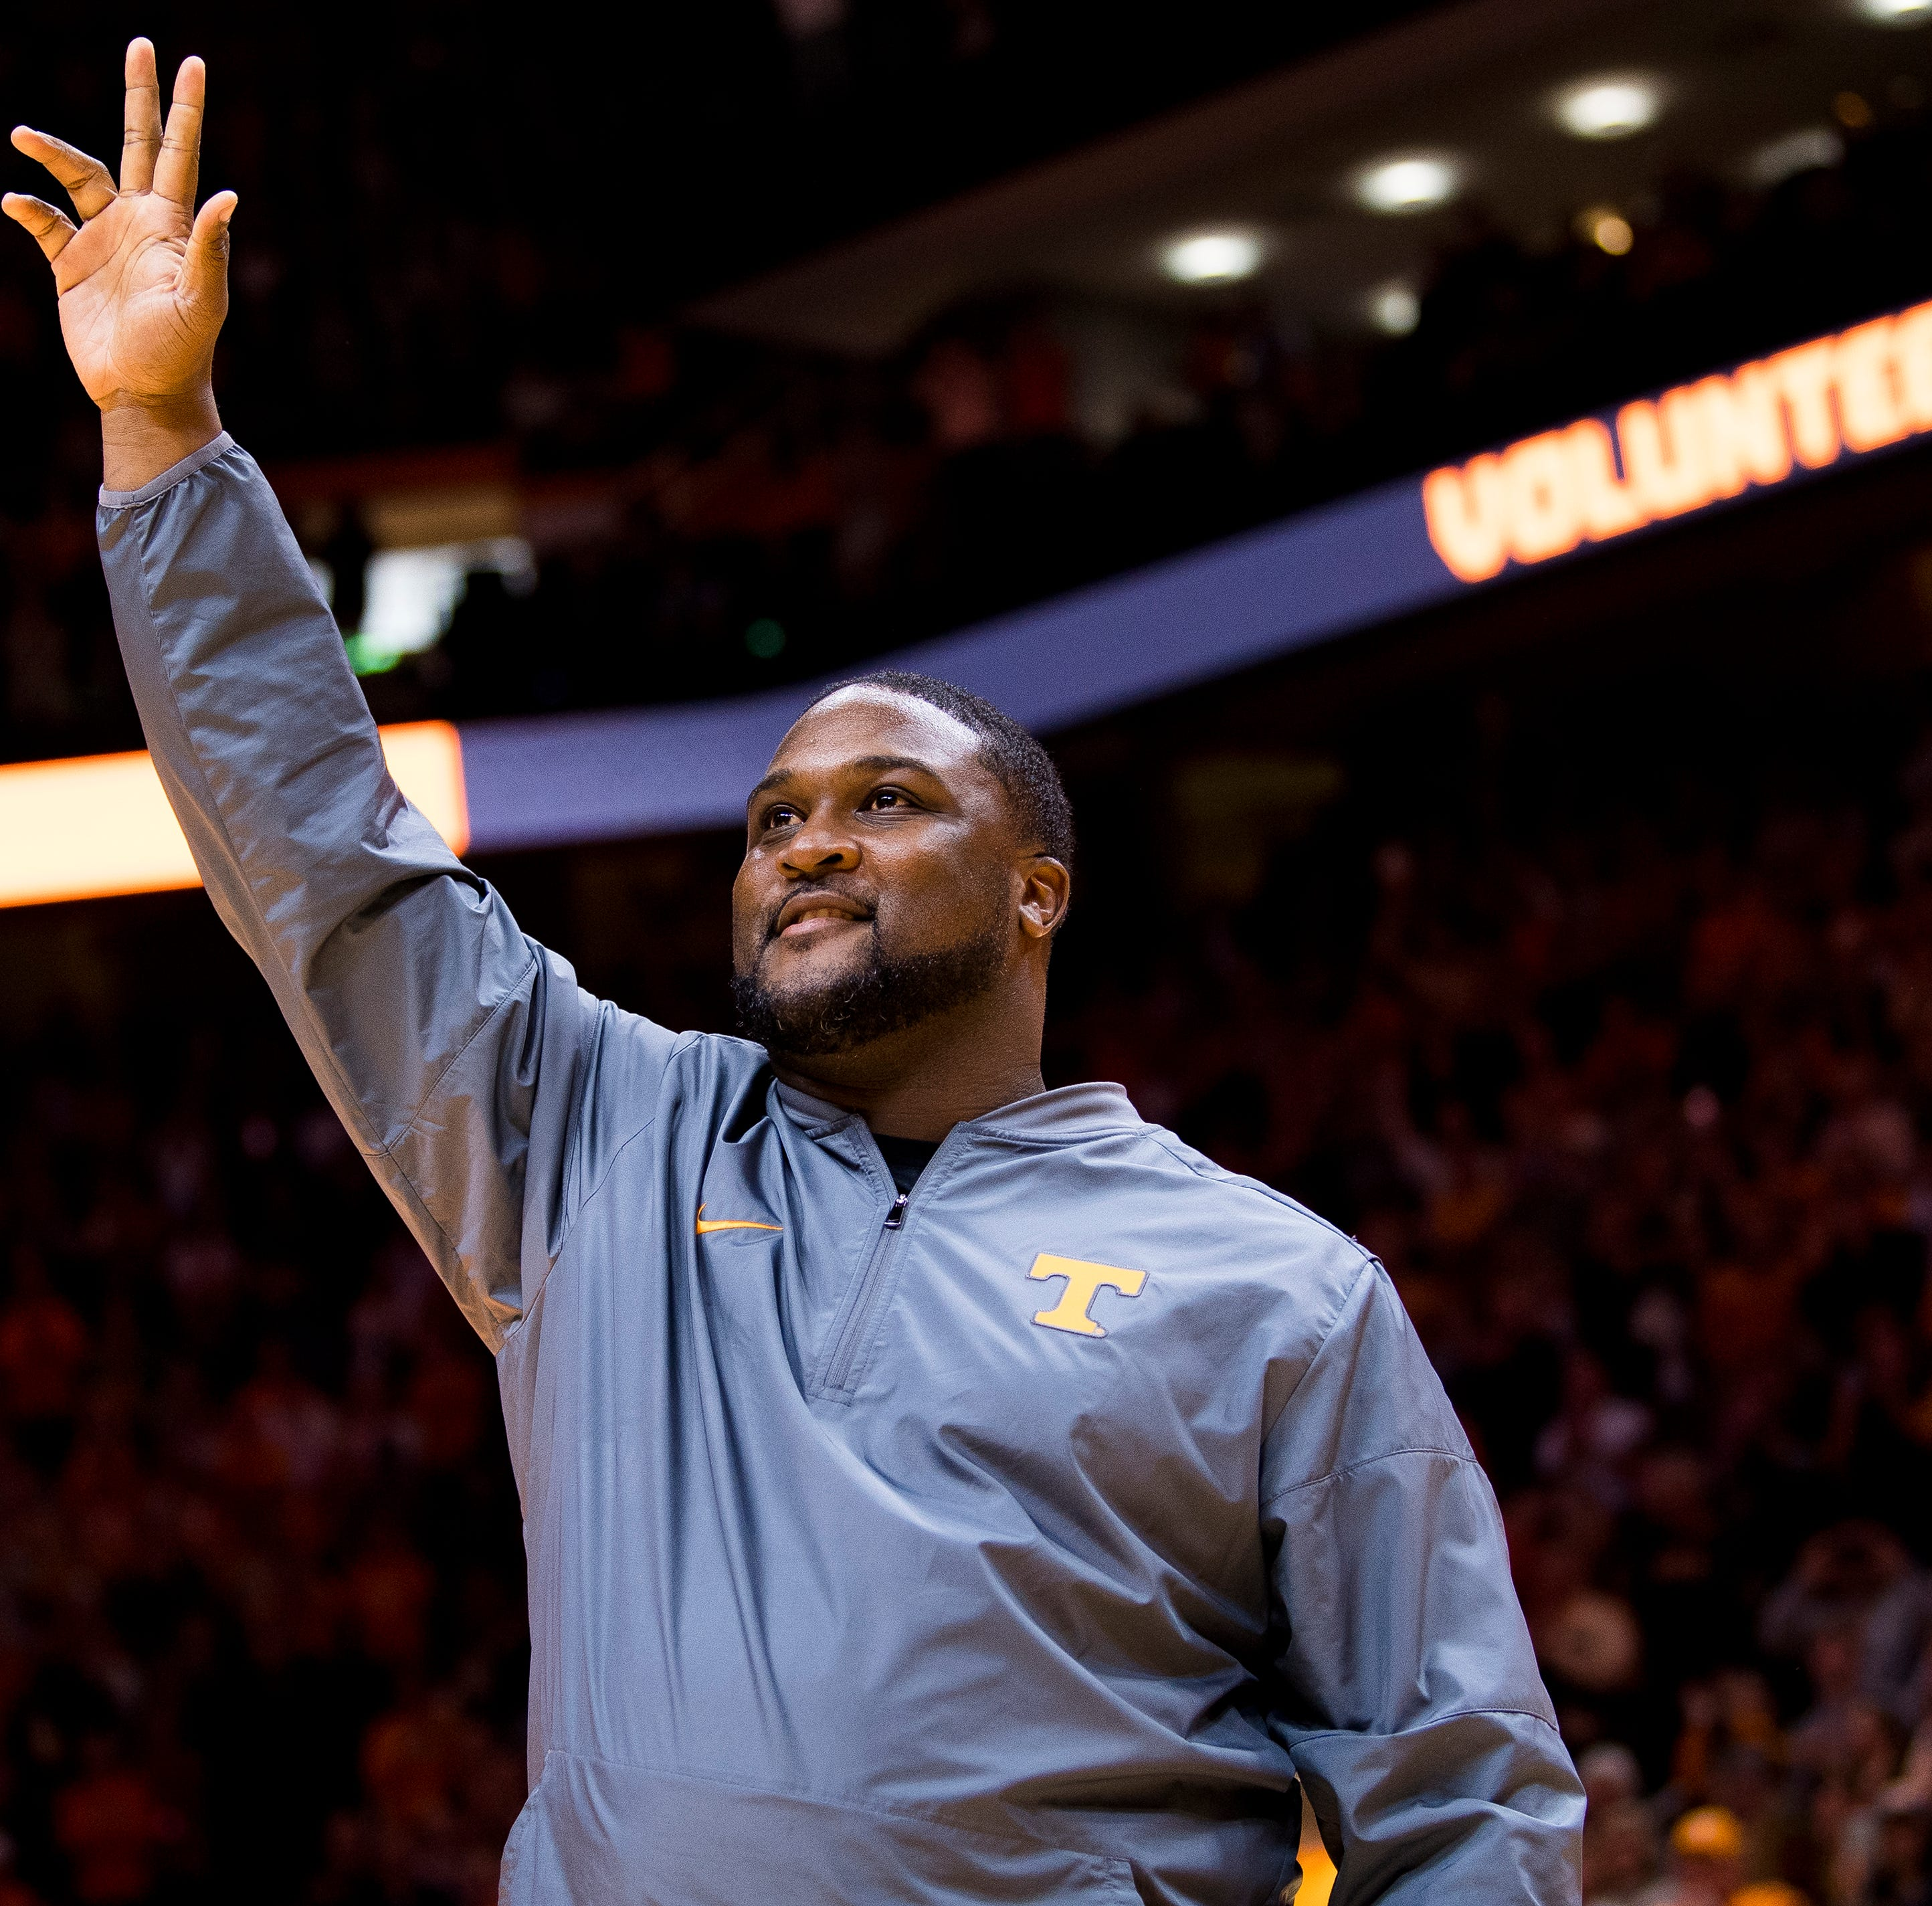 African-Americans welcome Tee Martin back, glad to see him getting what he deserves | Opinion